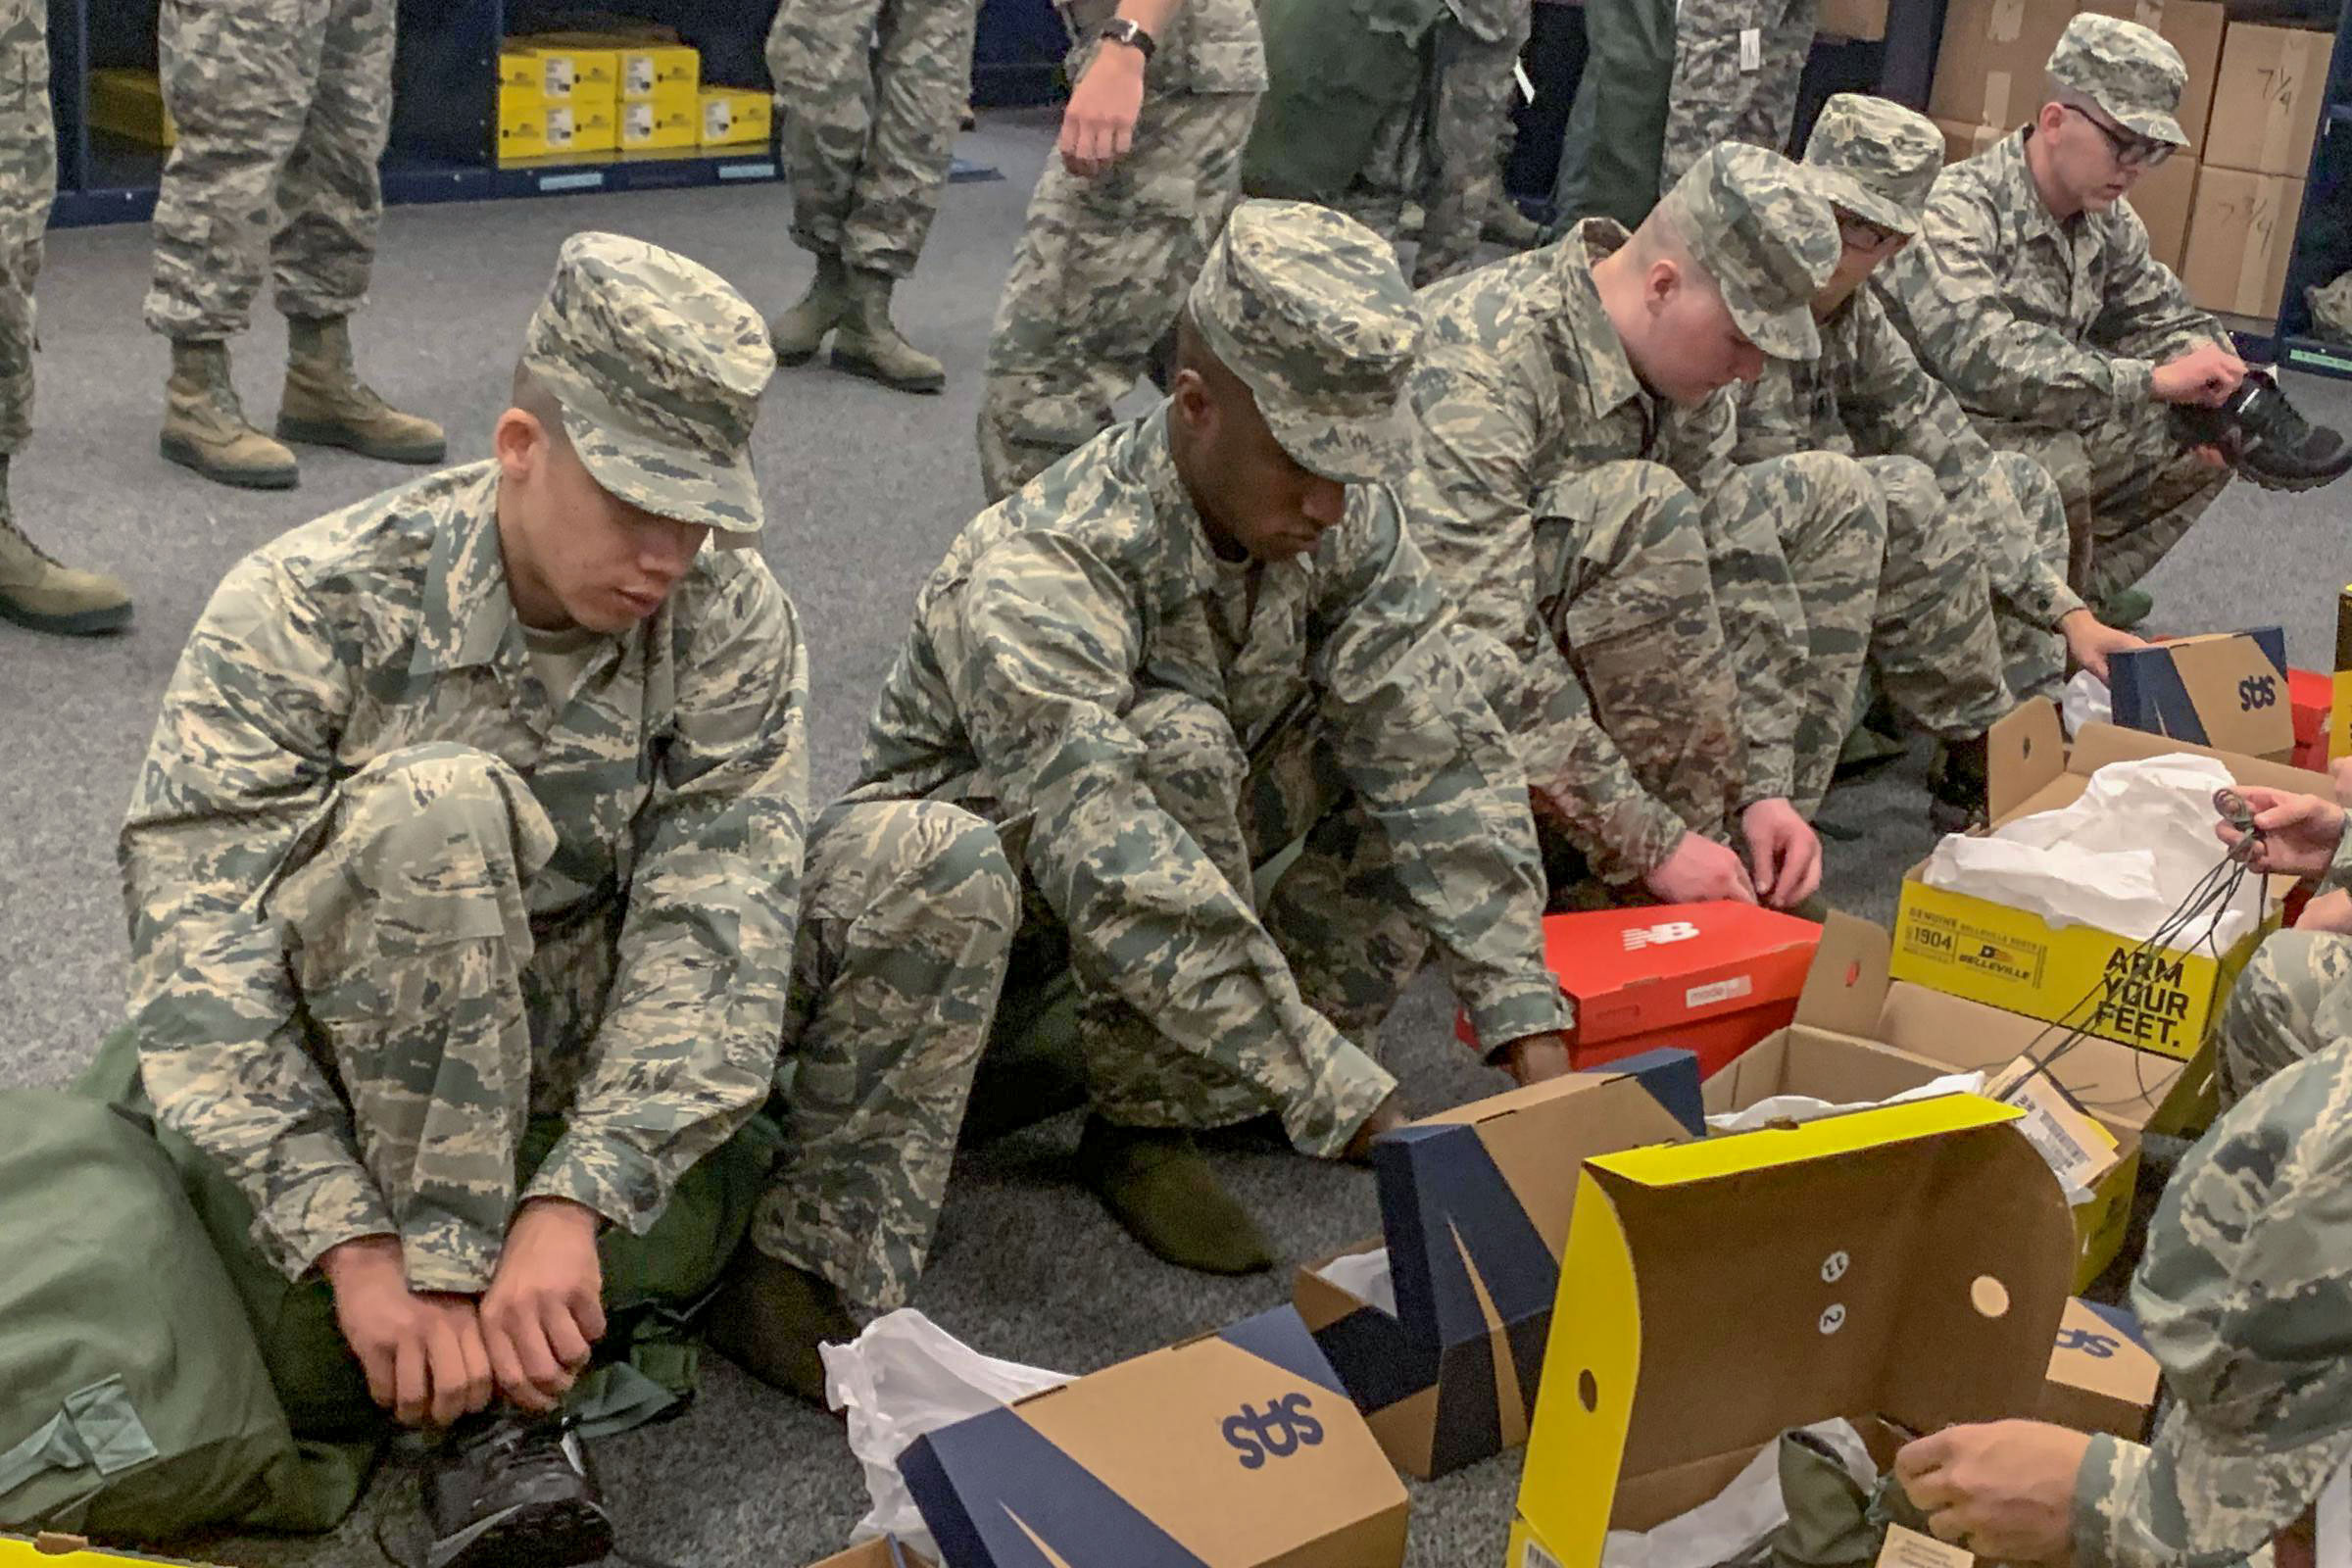 <p>New Air Force recruits try on shoes from San Antonio Shoemakers, Propper Footwear and New Balance. Since January, the Defense Department has been issuing the shoes free of charge to recruits.</p>